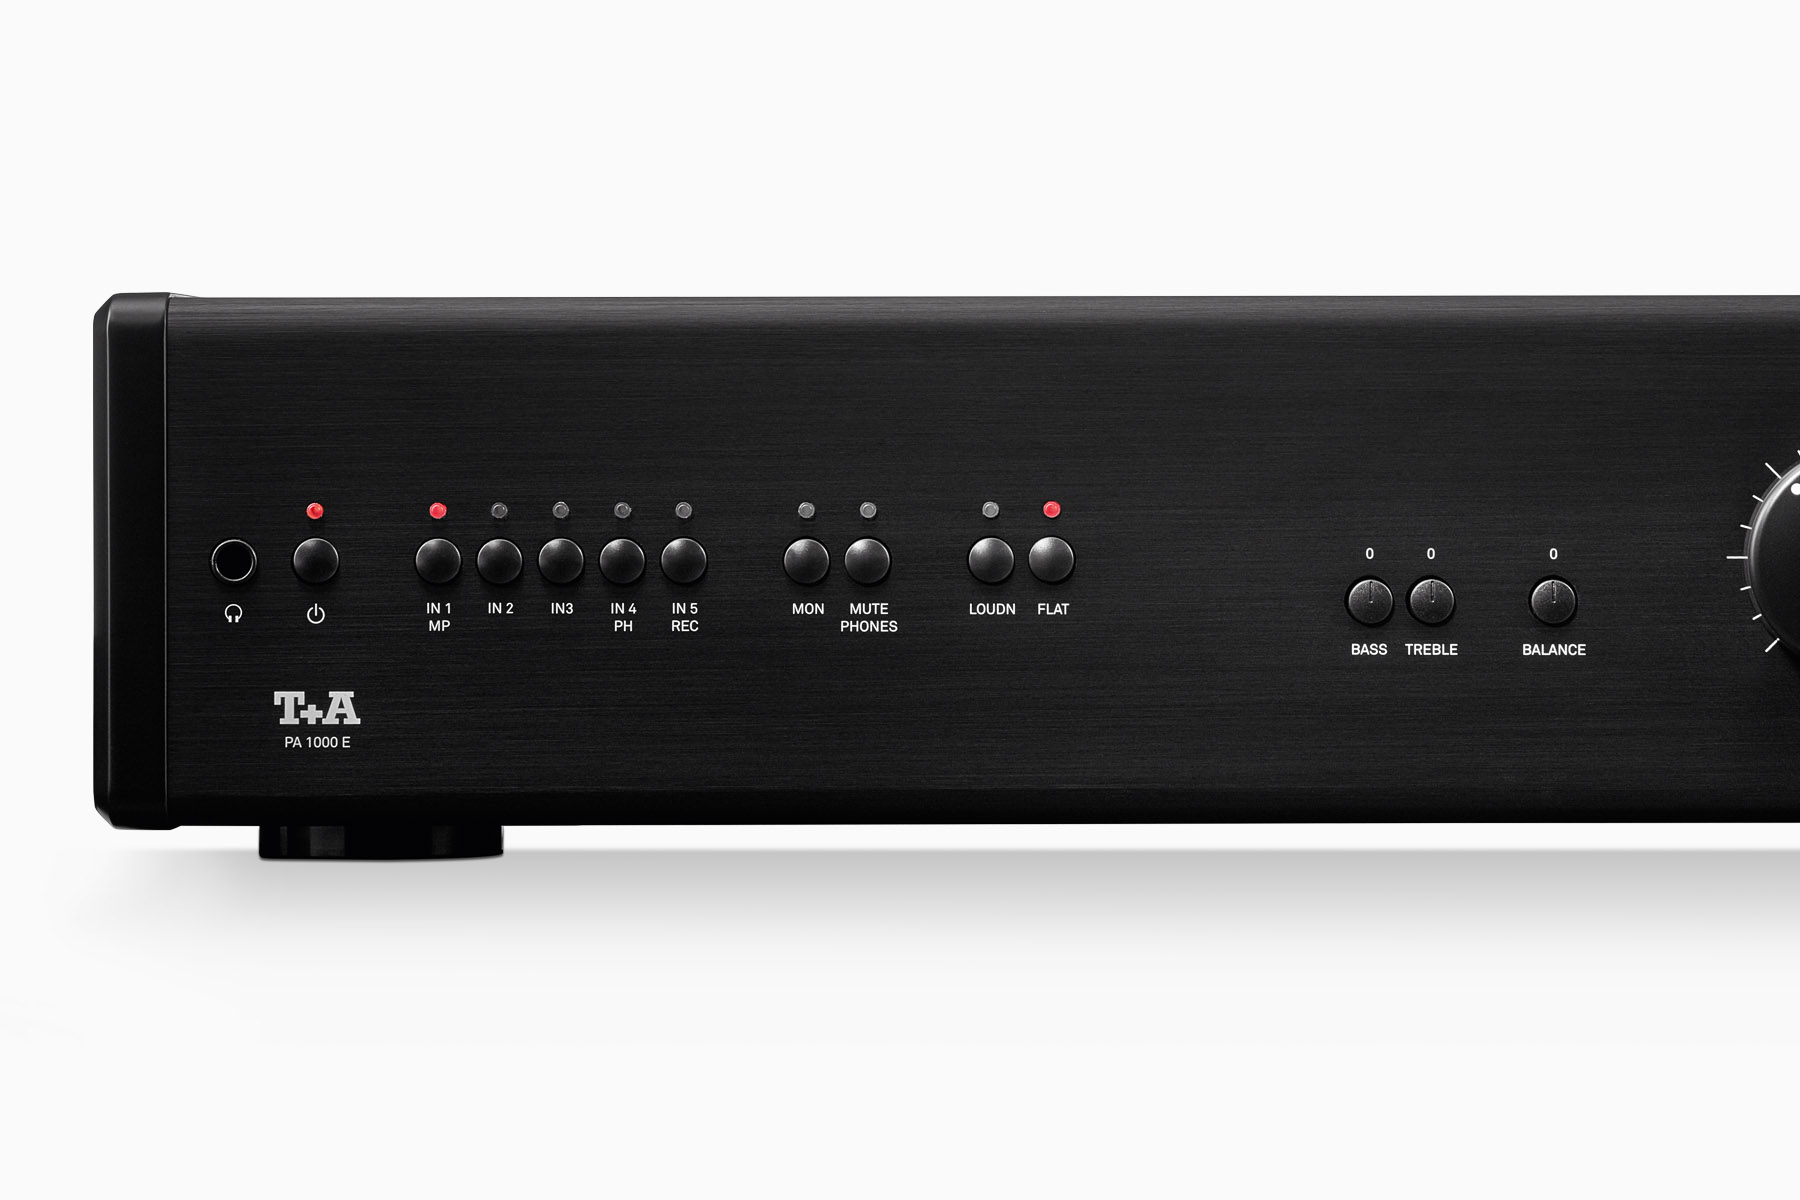 Pa 1000 E Integrated Amplifier Bass And Treble Control Without Any Ic Transistor The Input Selector Switches Incorporate Gold Contact Relays Of Outstanding Quality In Order To Guarantee Freedom From Harmonic Distortion Background